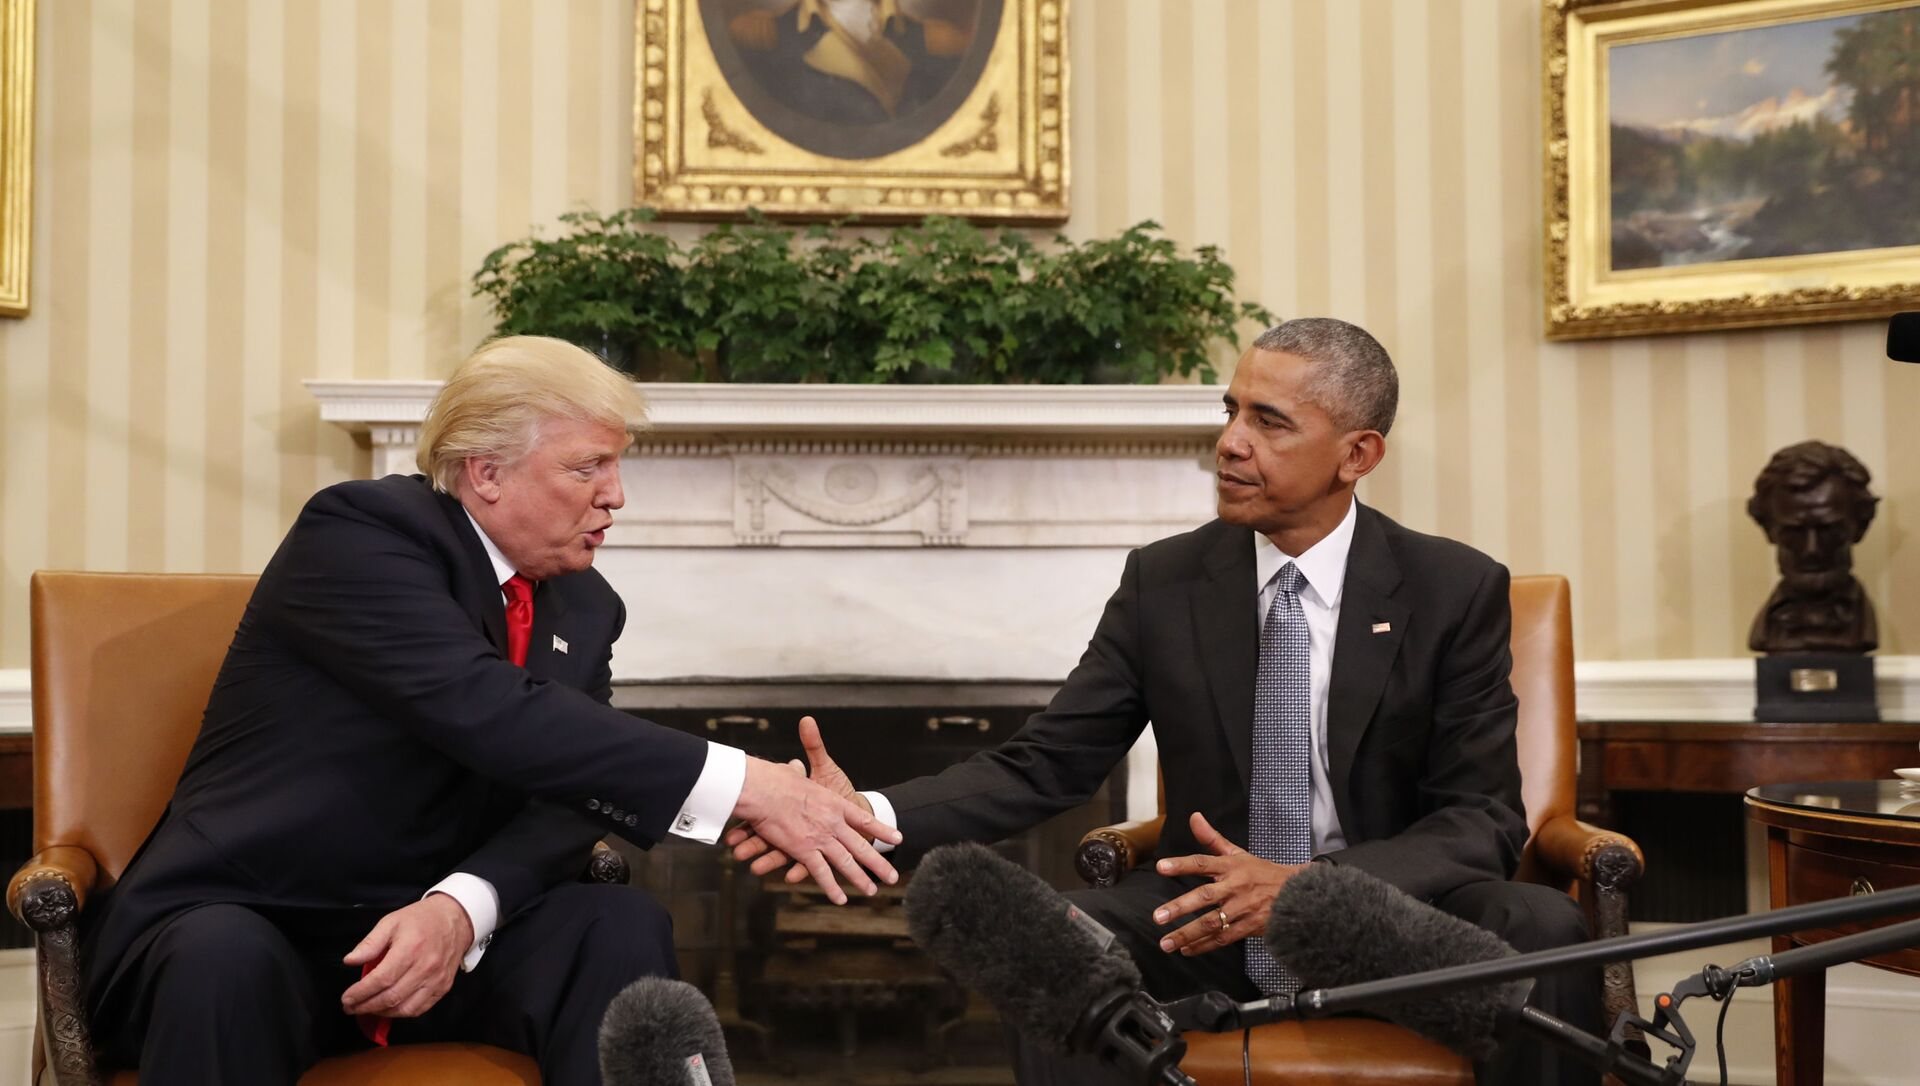 In this Nov. 10, 2016 file photo, President Barack Obama shakes hands with then-President-elect Donald Trump in the Oval Office of the White House in Washington - Sputnik International, 1920, 02.08.2021